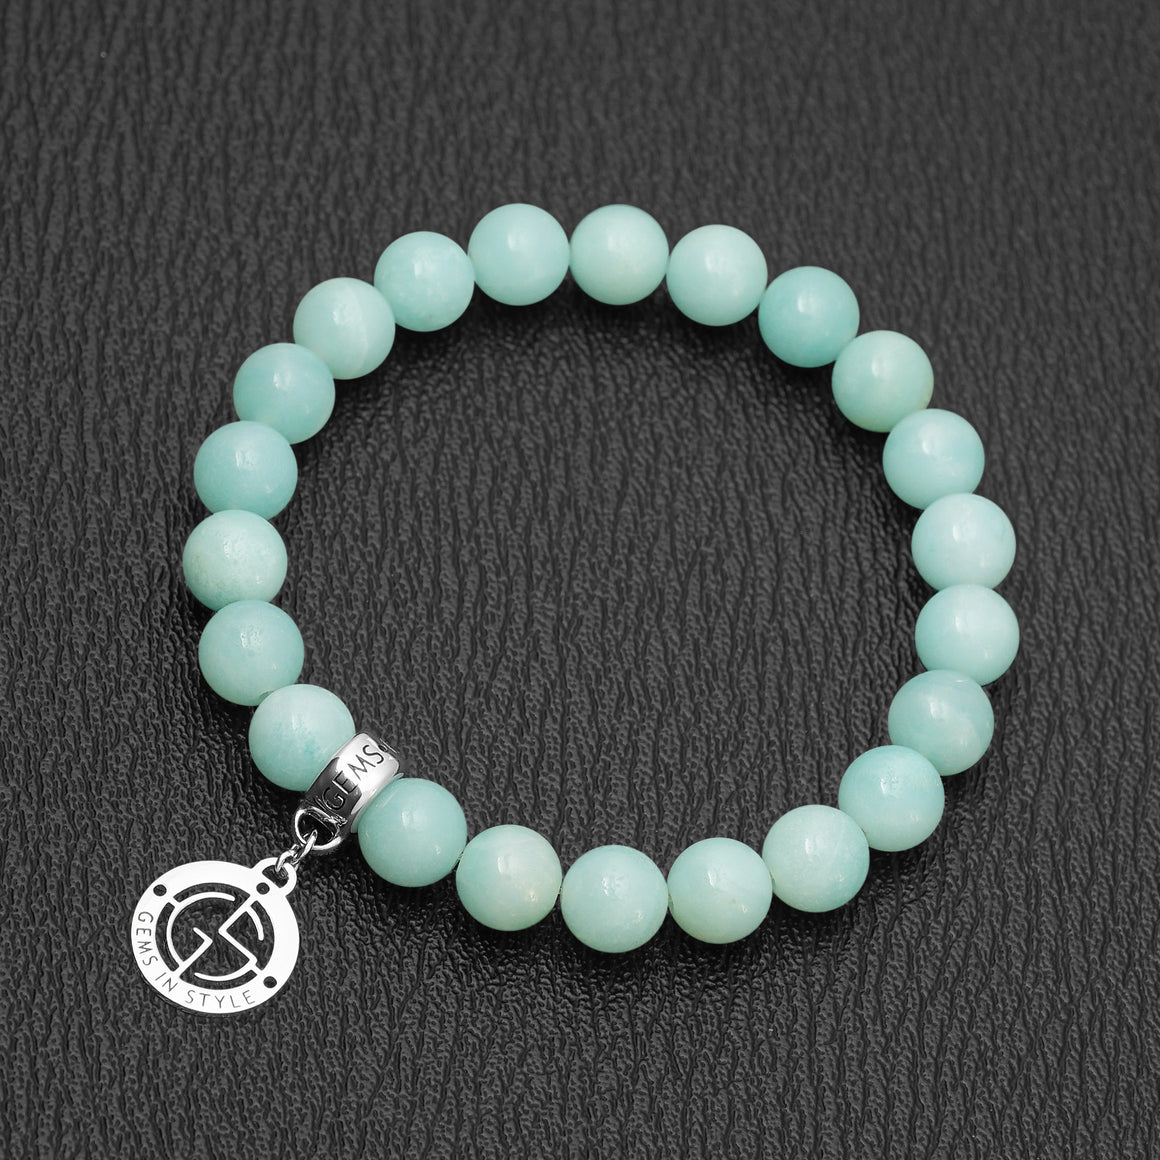 Amazonite gemstone bracelet with silver charm by Gems In Style Jewellery.